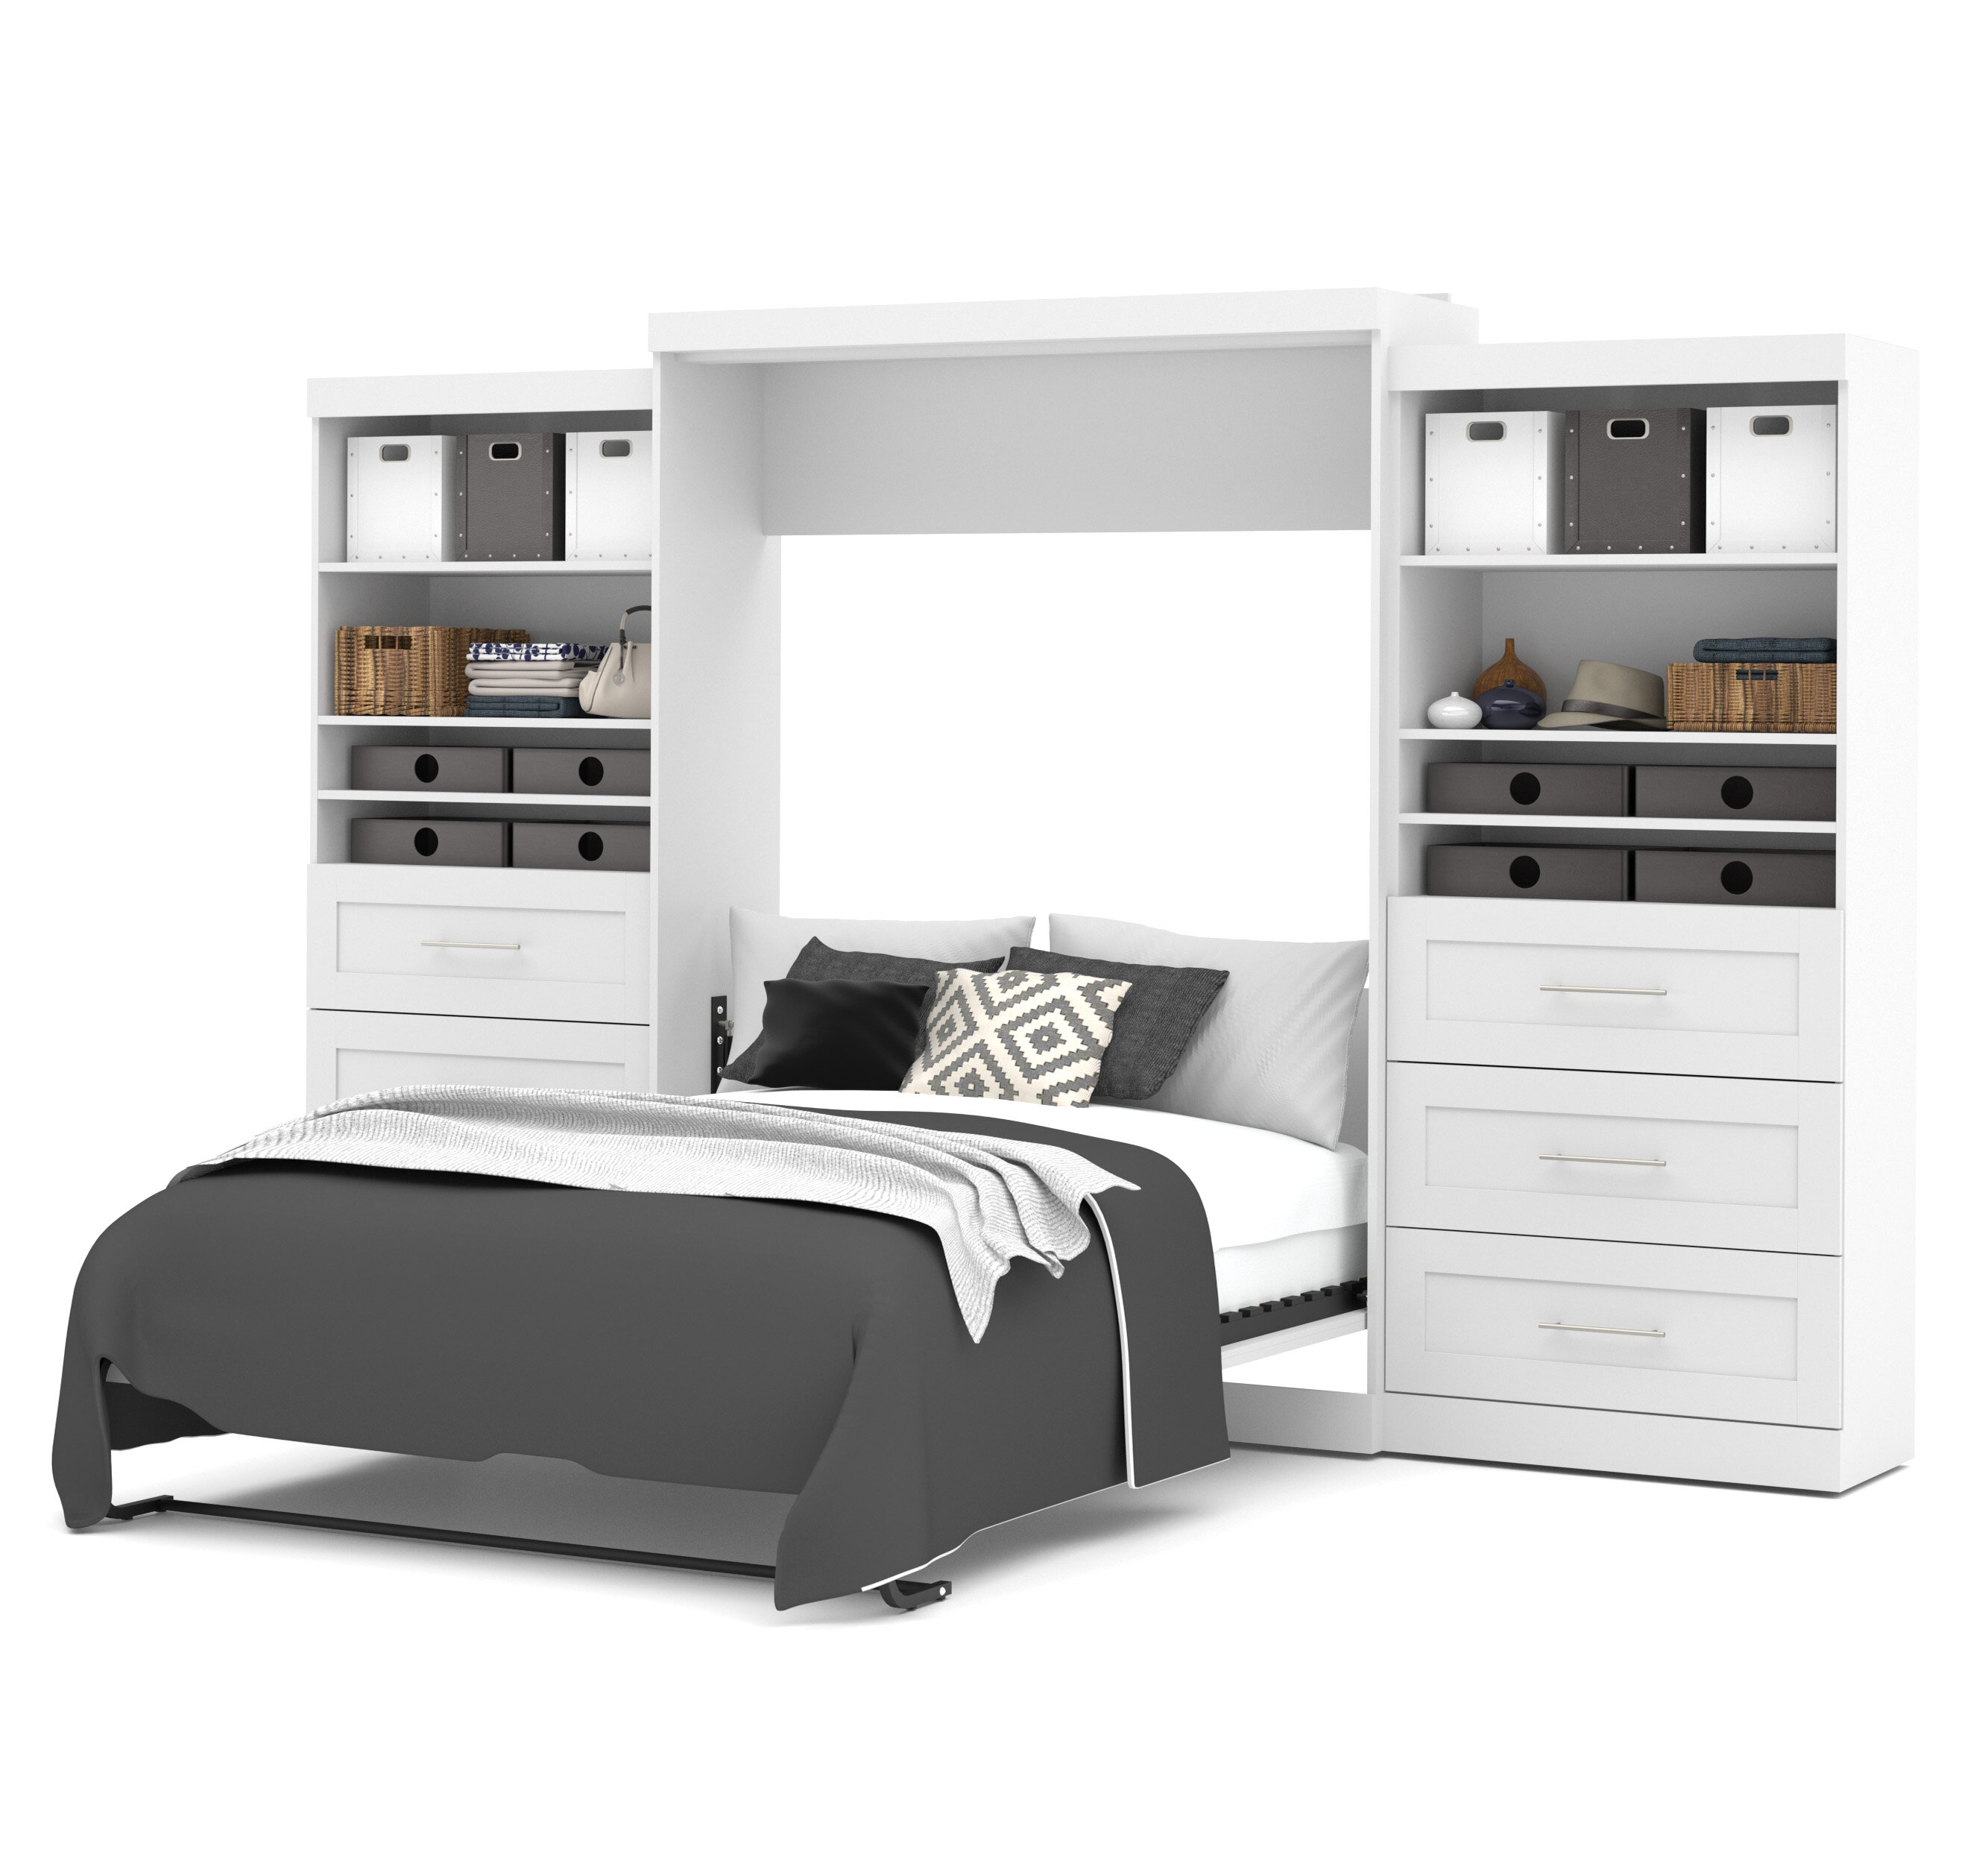 com bed co panel murphybed tnmurphybeds beds pics murphy queen